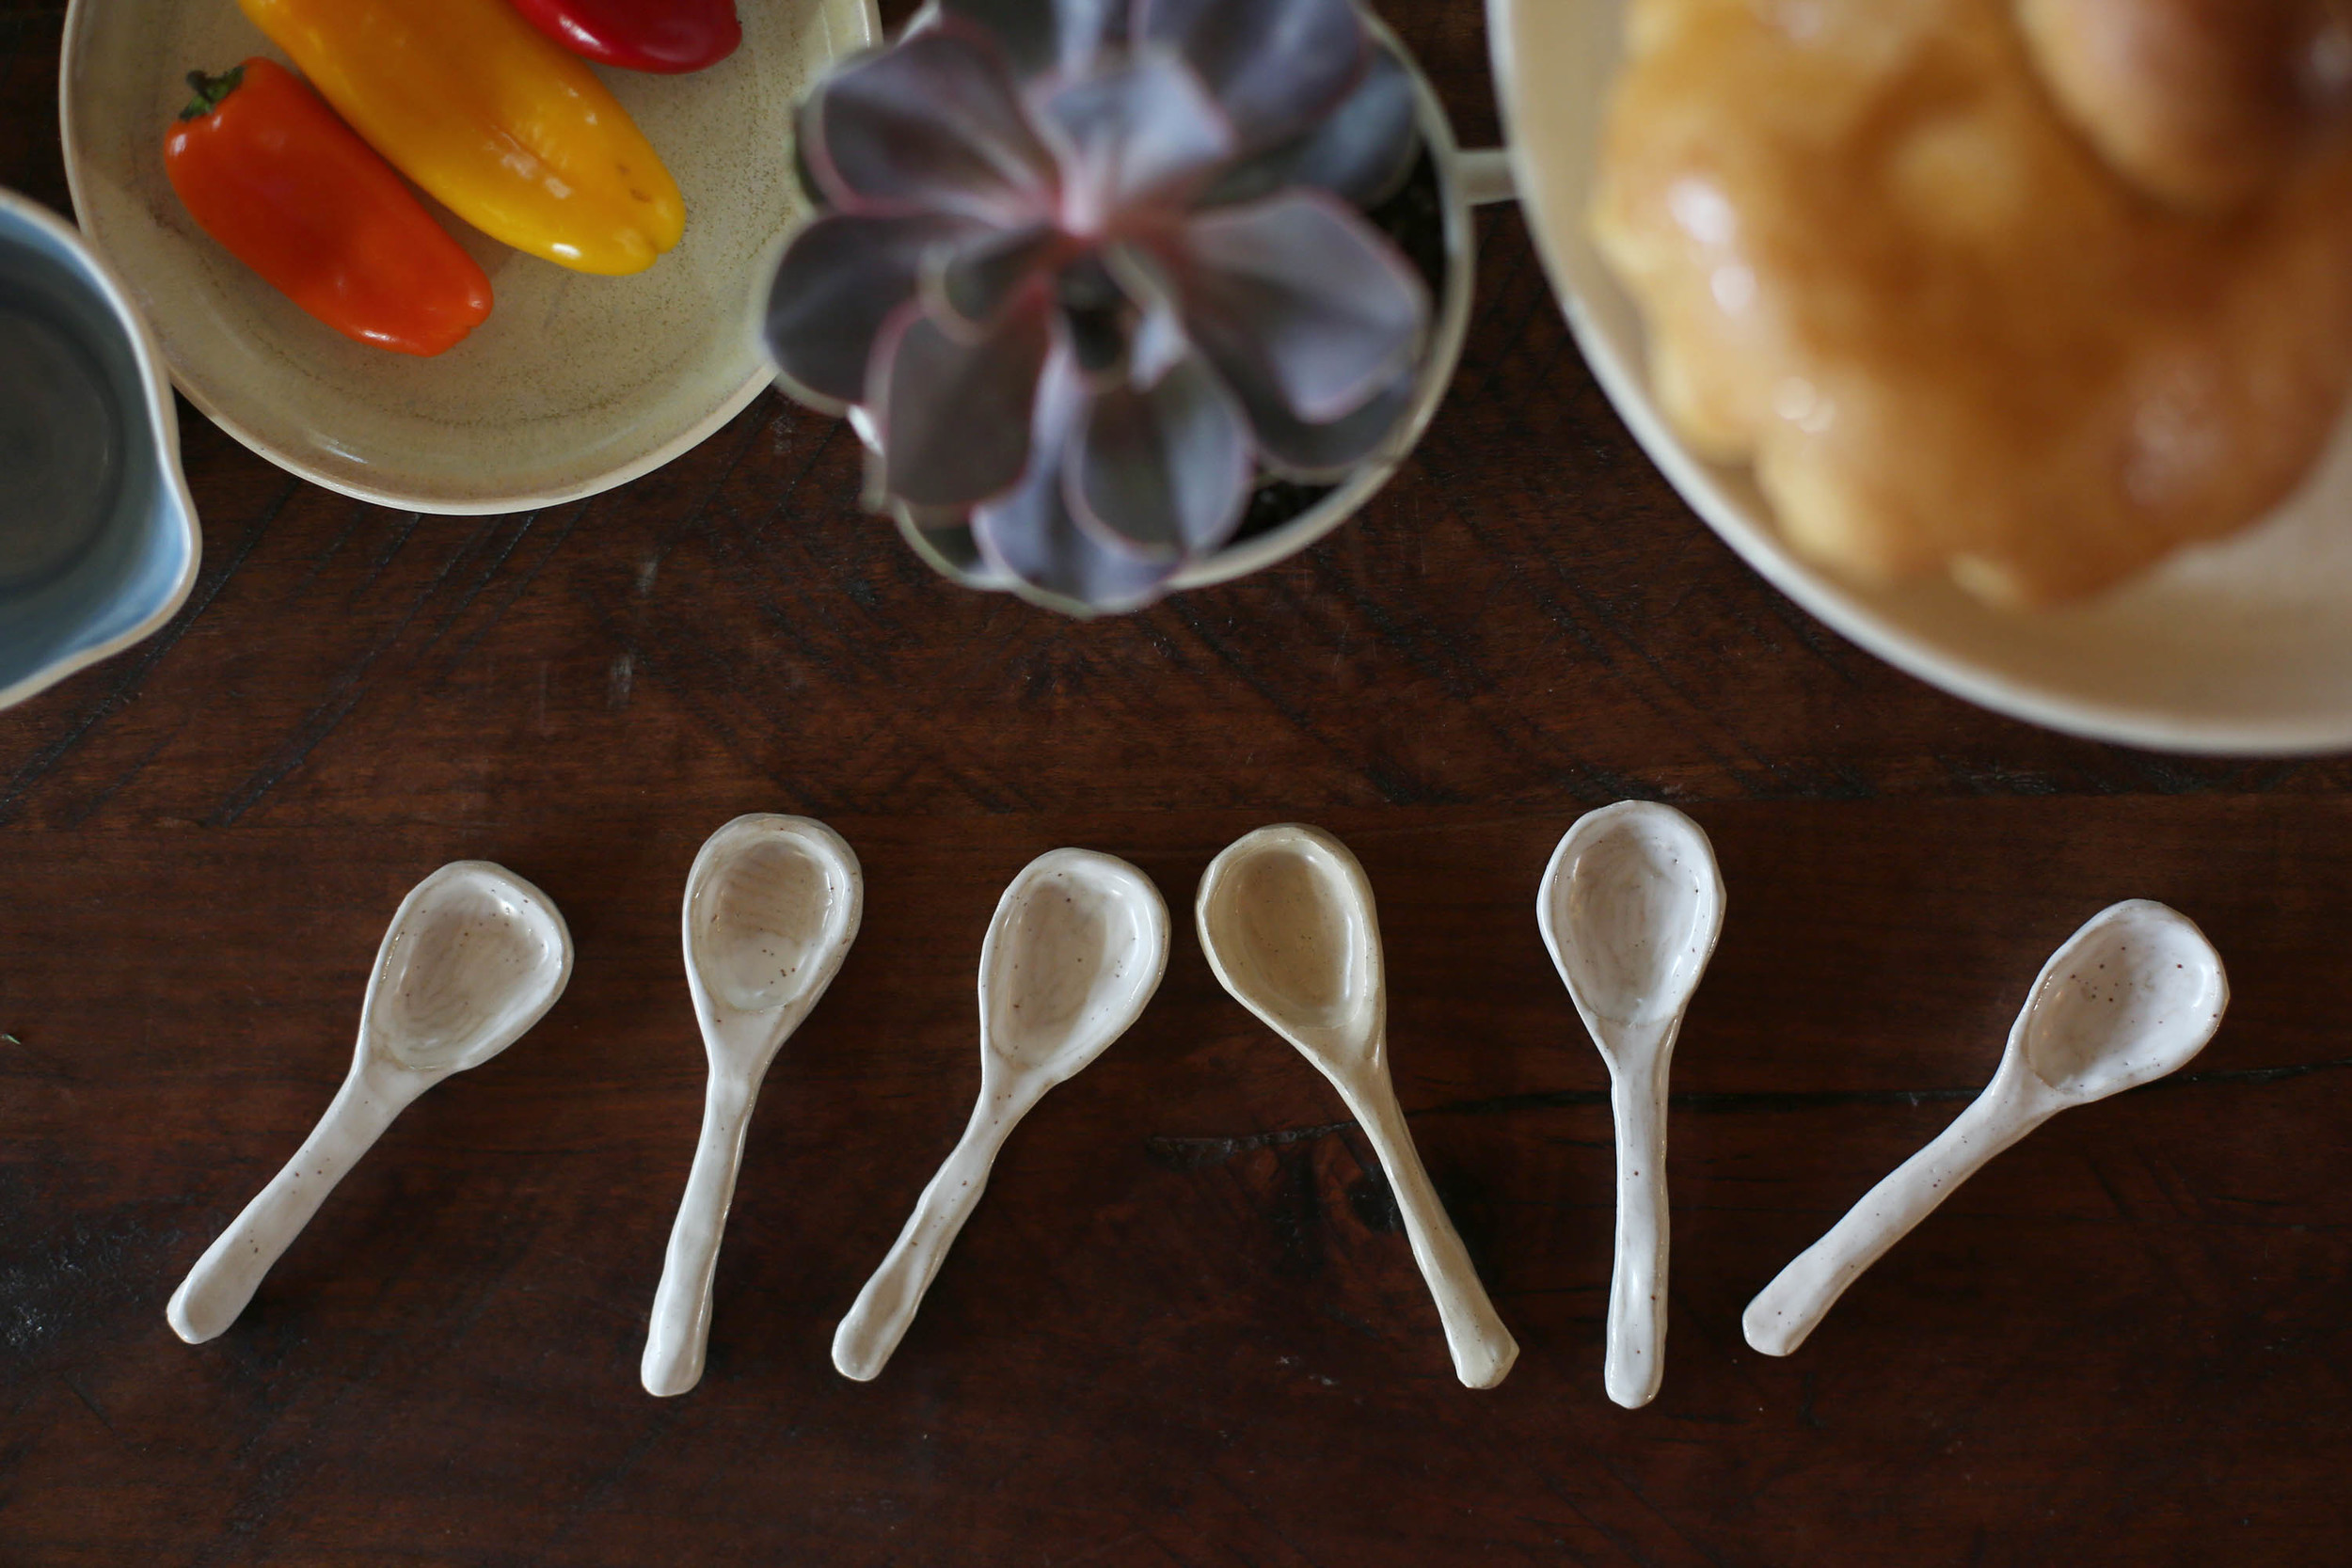 Seriously... these spoons.